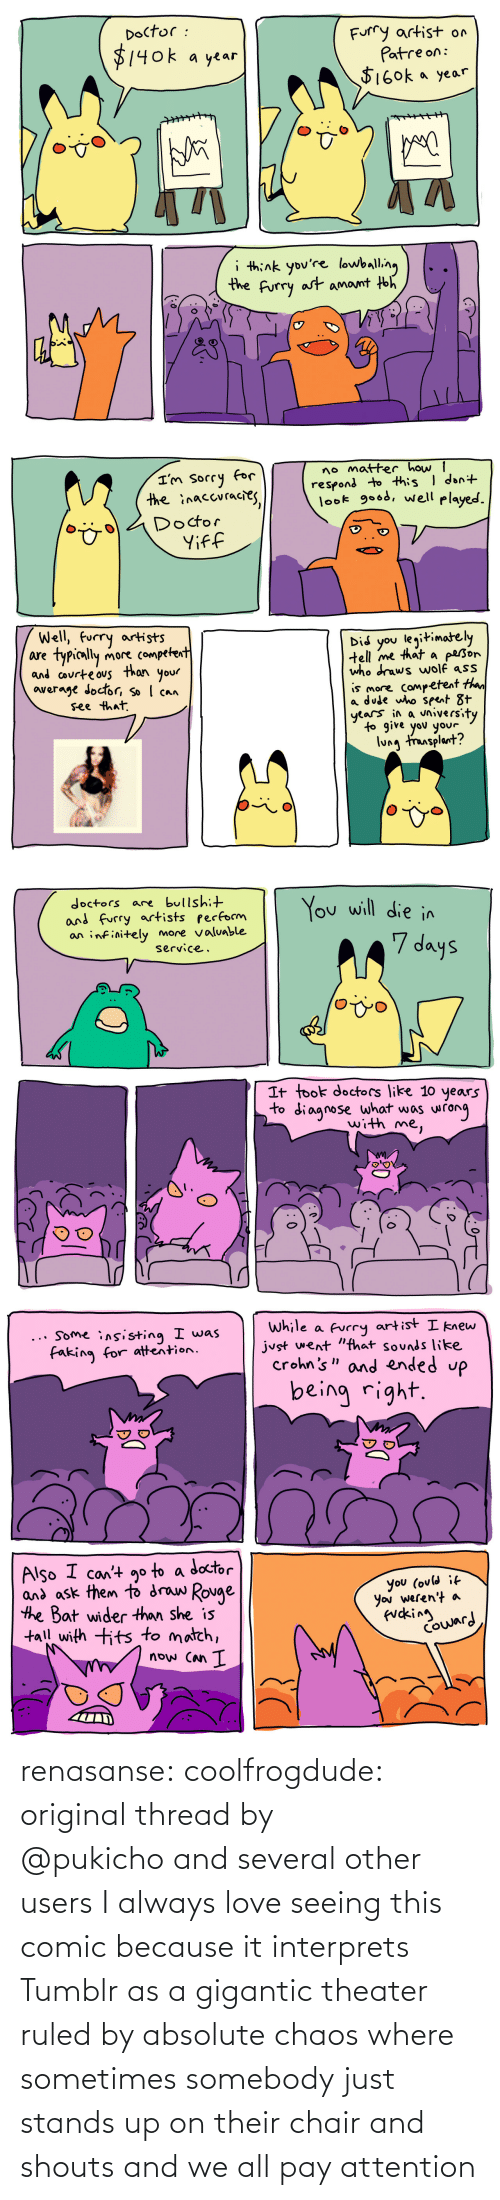 seeing: renasanse: coolfrogdude: original thread by @pukicho and several other users I always love seeing this comic because it interprets Tumblr as a gigantic theater ruled by absolute chaos where sometimes somebody just stands up on their chair and shouts and we all pay attention